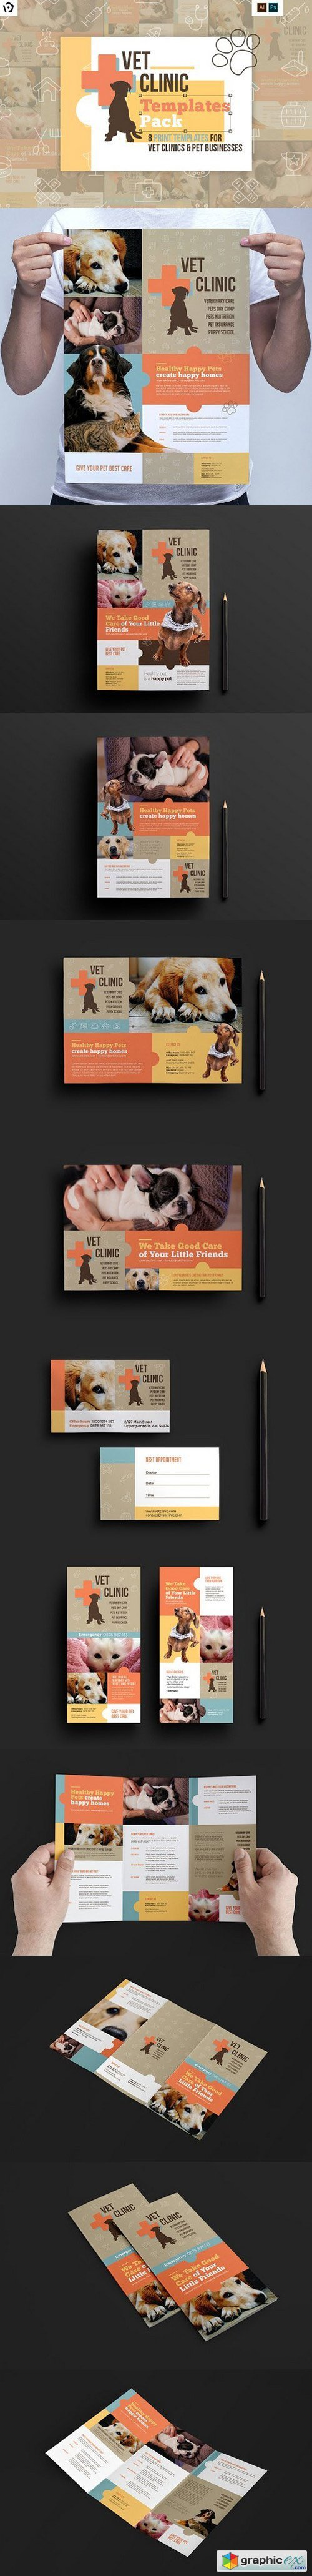 Vet Clinic Templates Pack